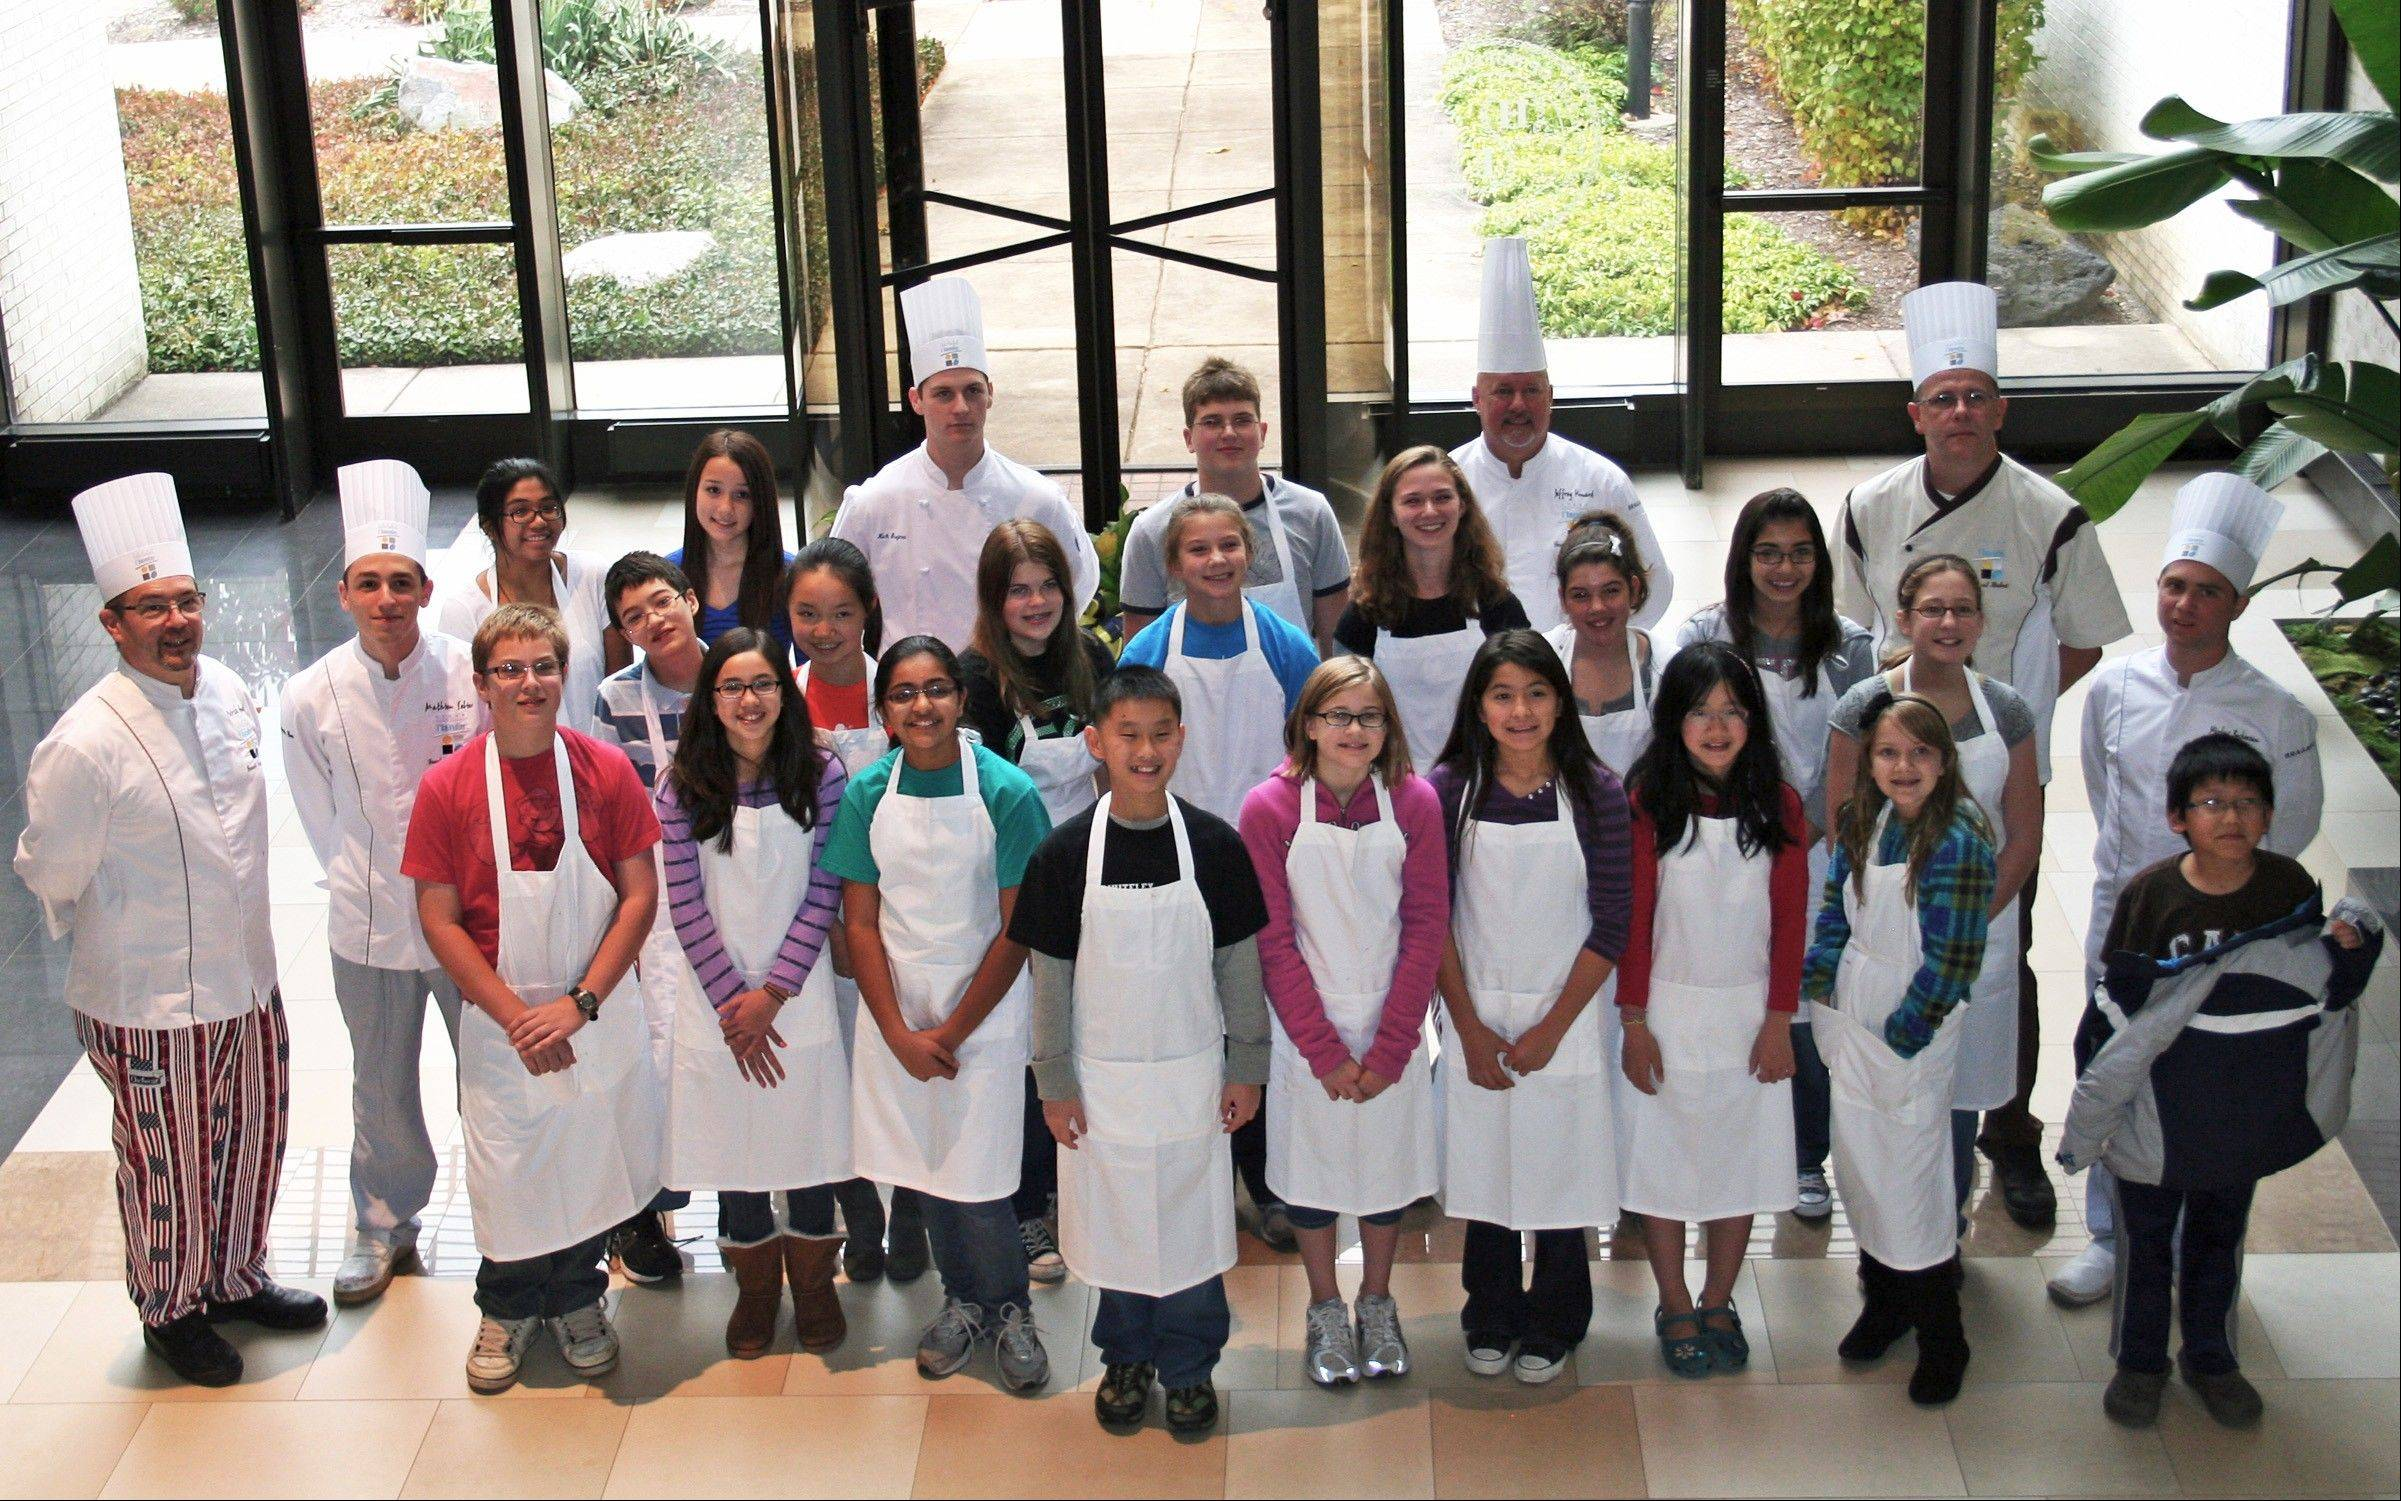 Chef Patrick Guat, far left, and his culinary students pose with participants in 2011�s children�s cooking class in the village hall lobby.